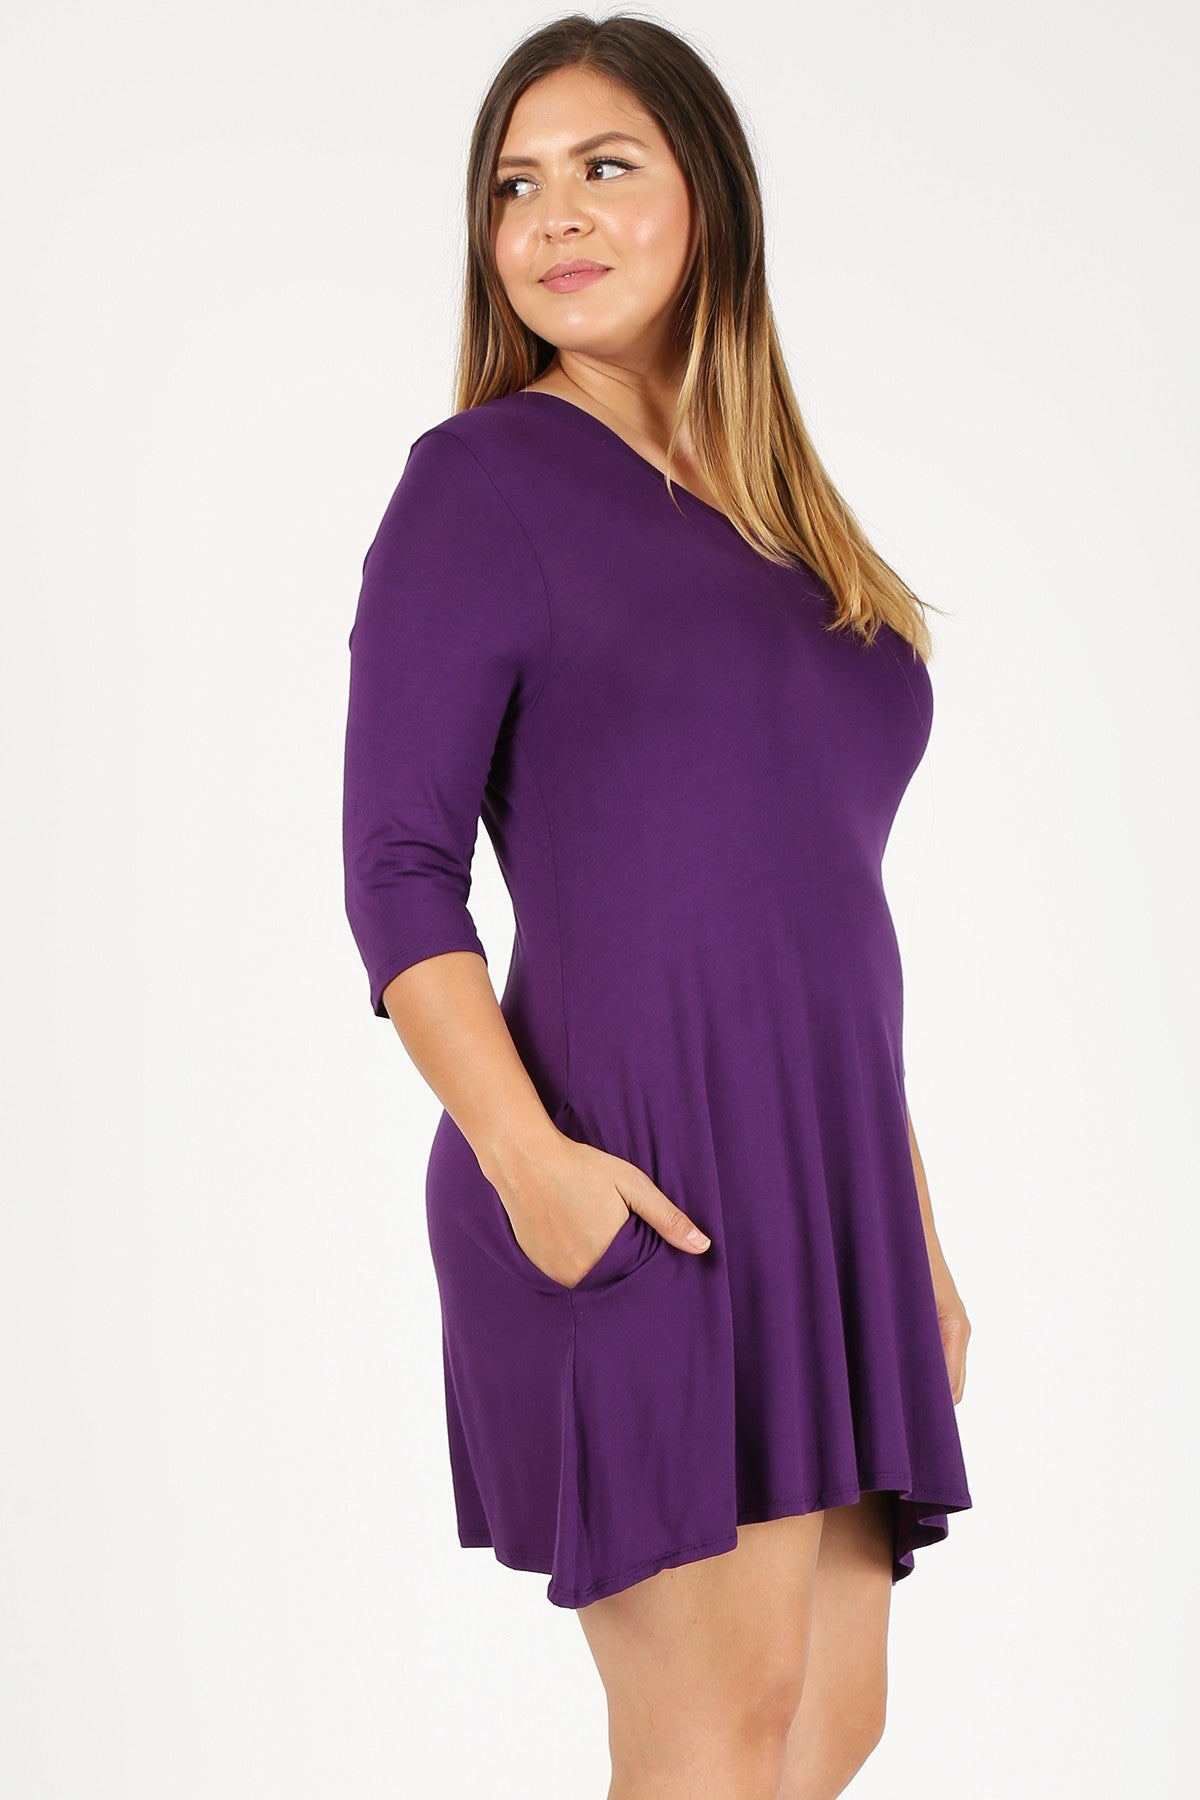 Women's Plus Size Loose Fit V-neckline Solid 3/4 Sleeve Side Pockets Flare Hi-low hem Dressy Tunic Tops